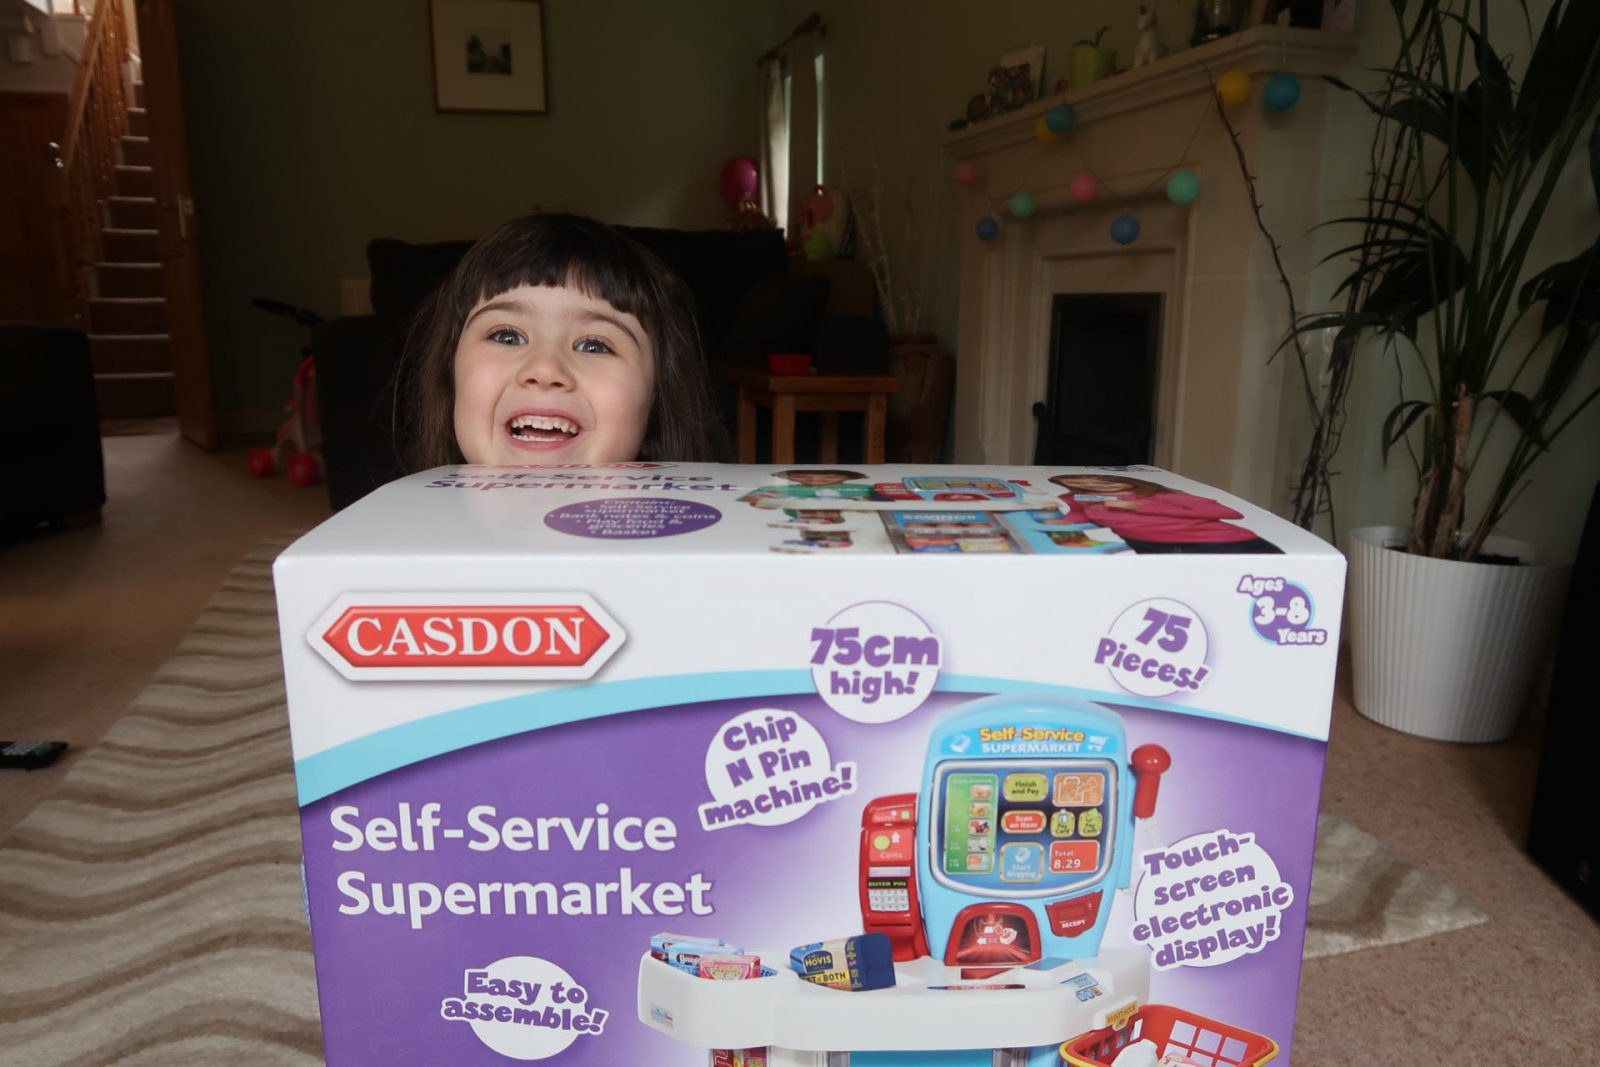 casdon self service supermarket girl with the box